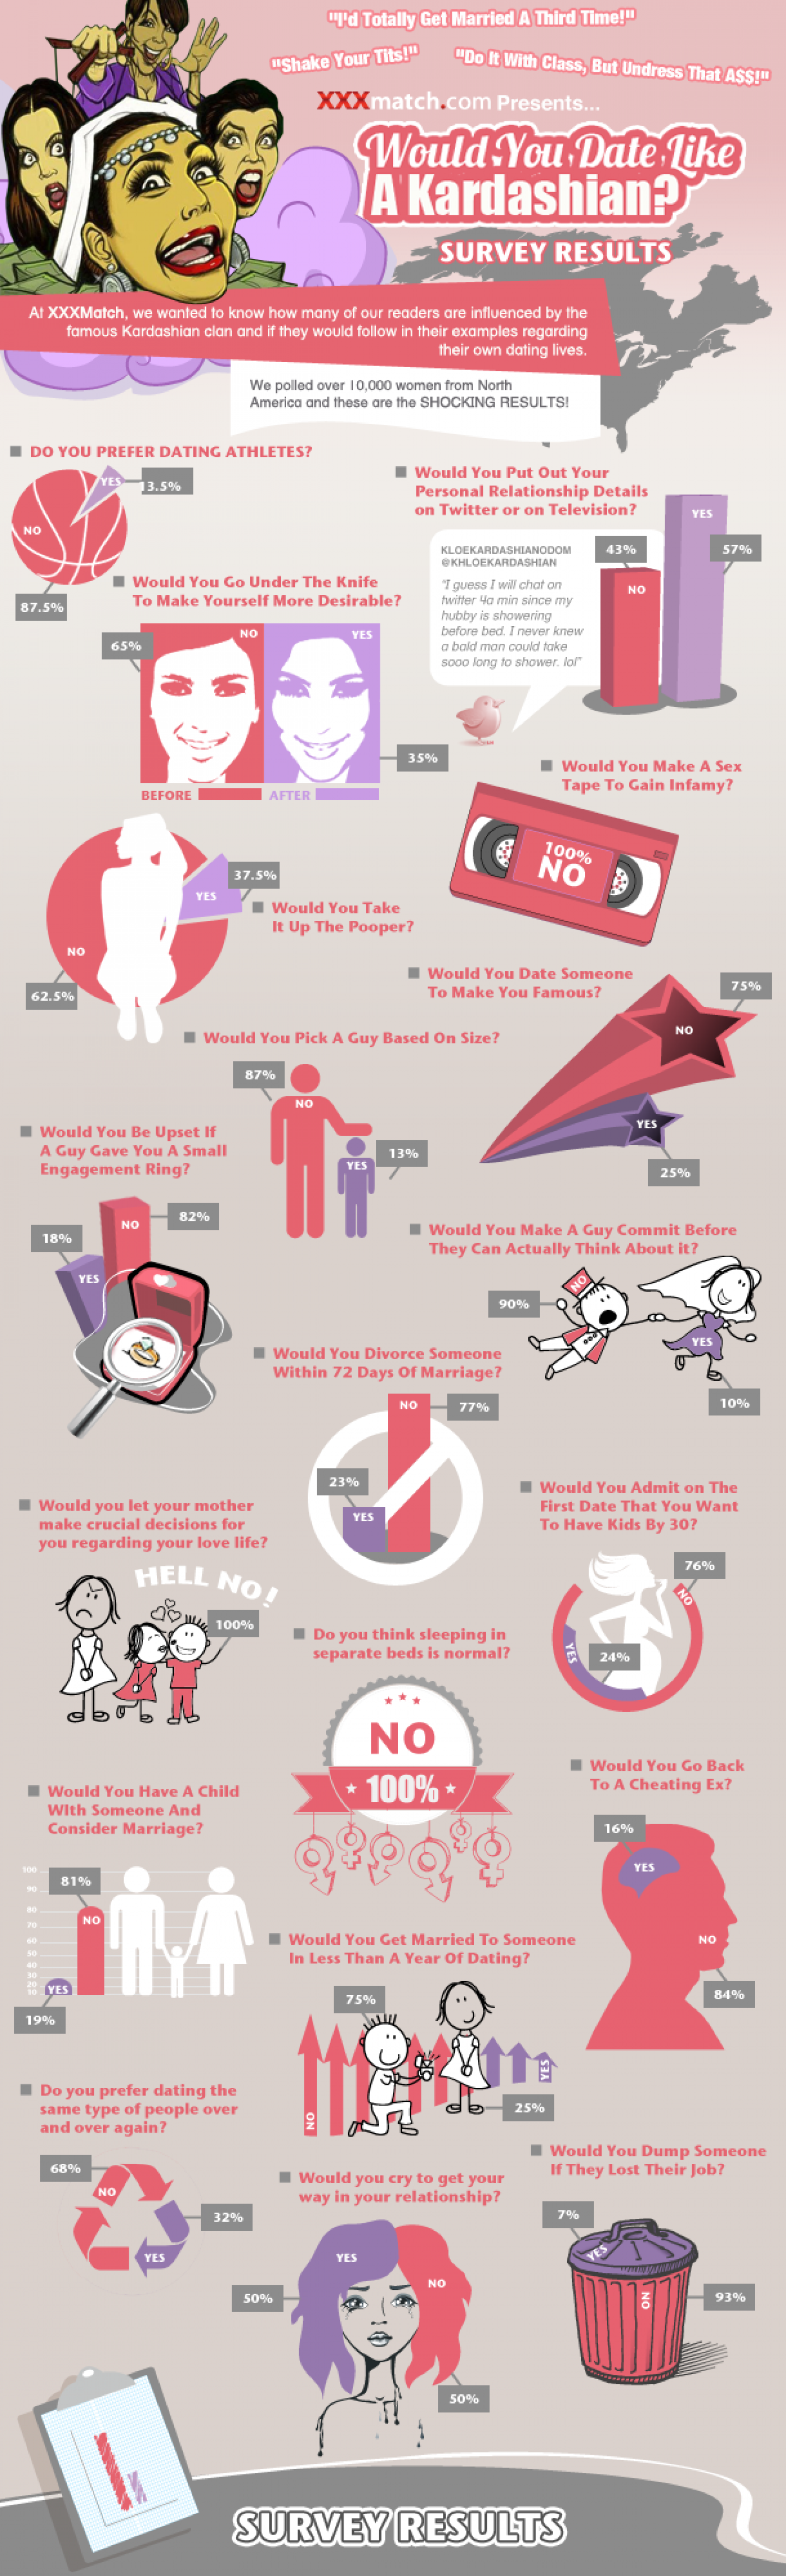 Would You Date Like A Kardashian? Infographic